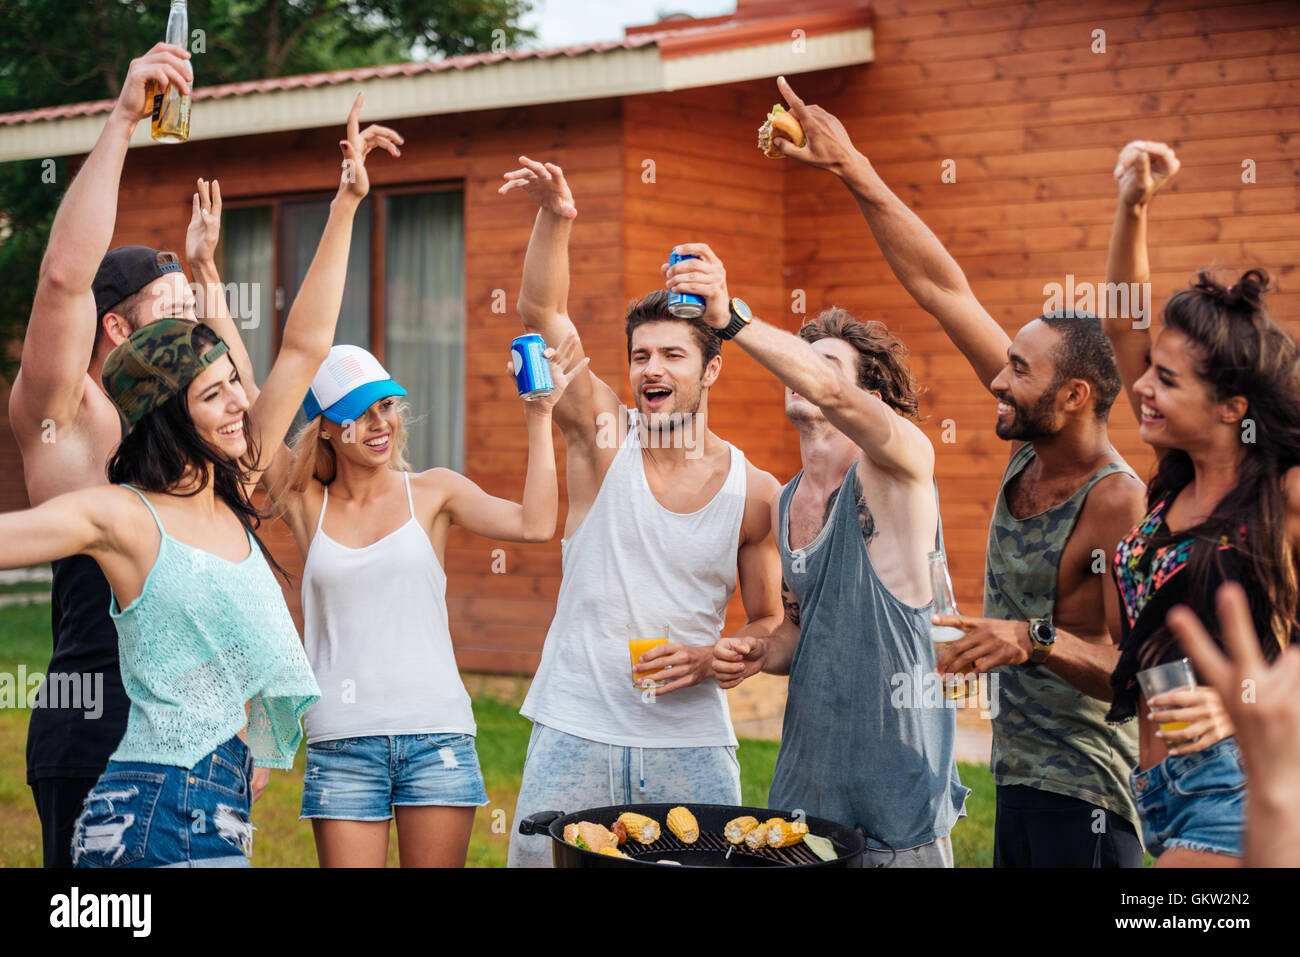 Group of cheerful young friends having fun outdoors - Stock Image